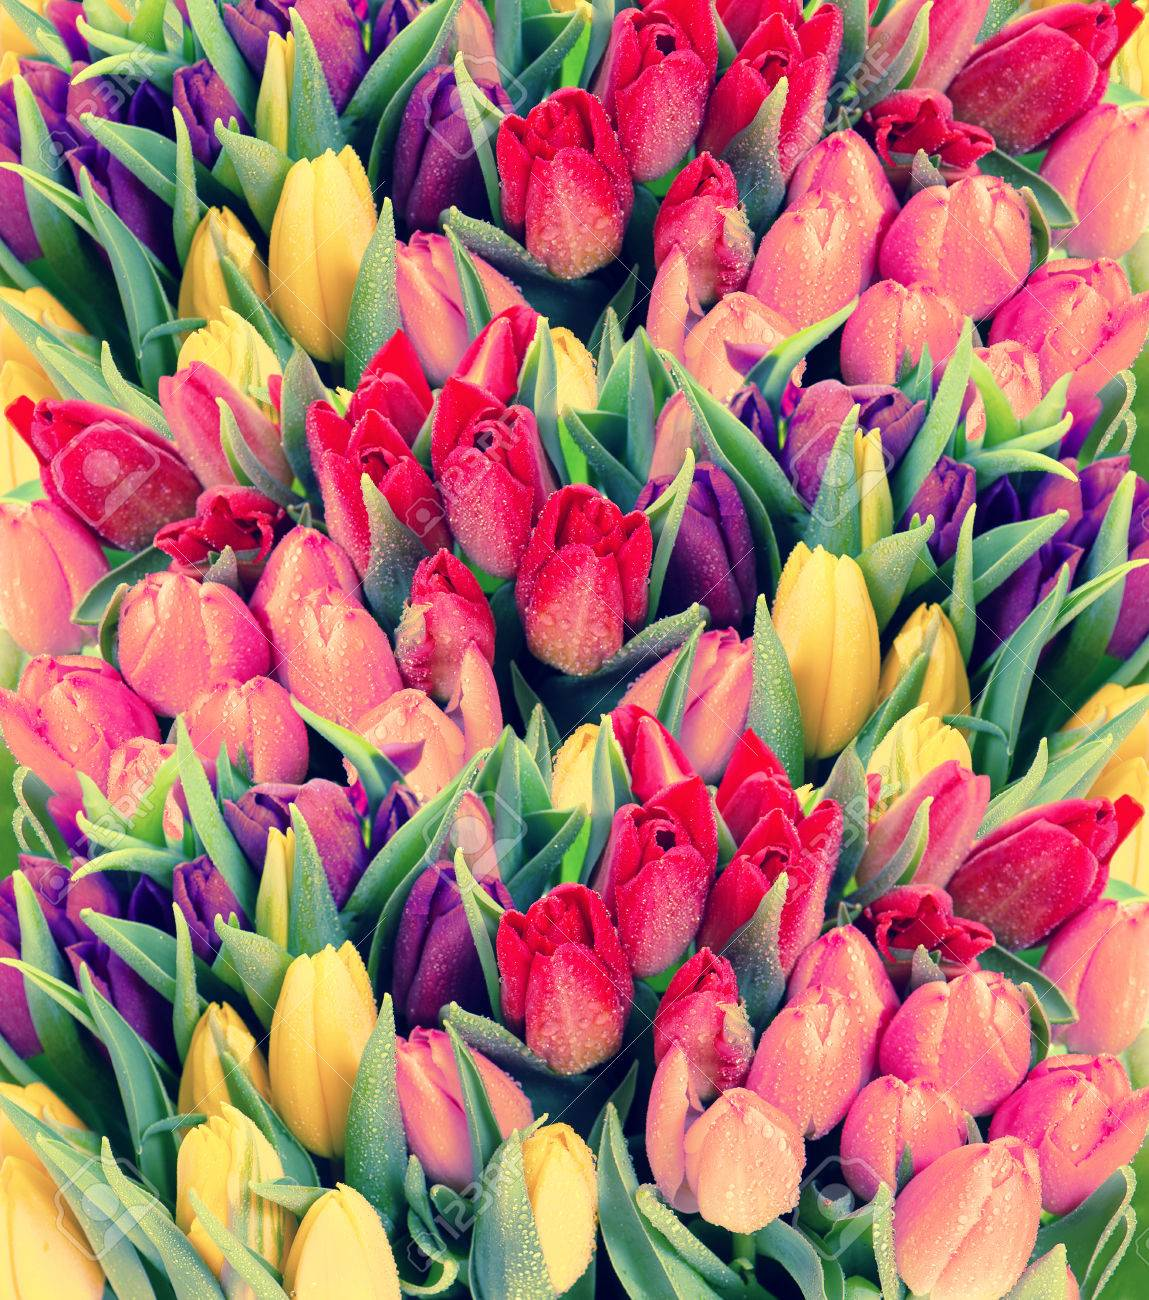 Tulips Fresh Spring Flowers With Water Drops Floral Background